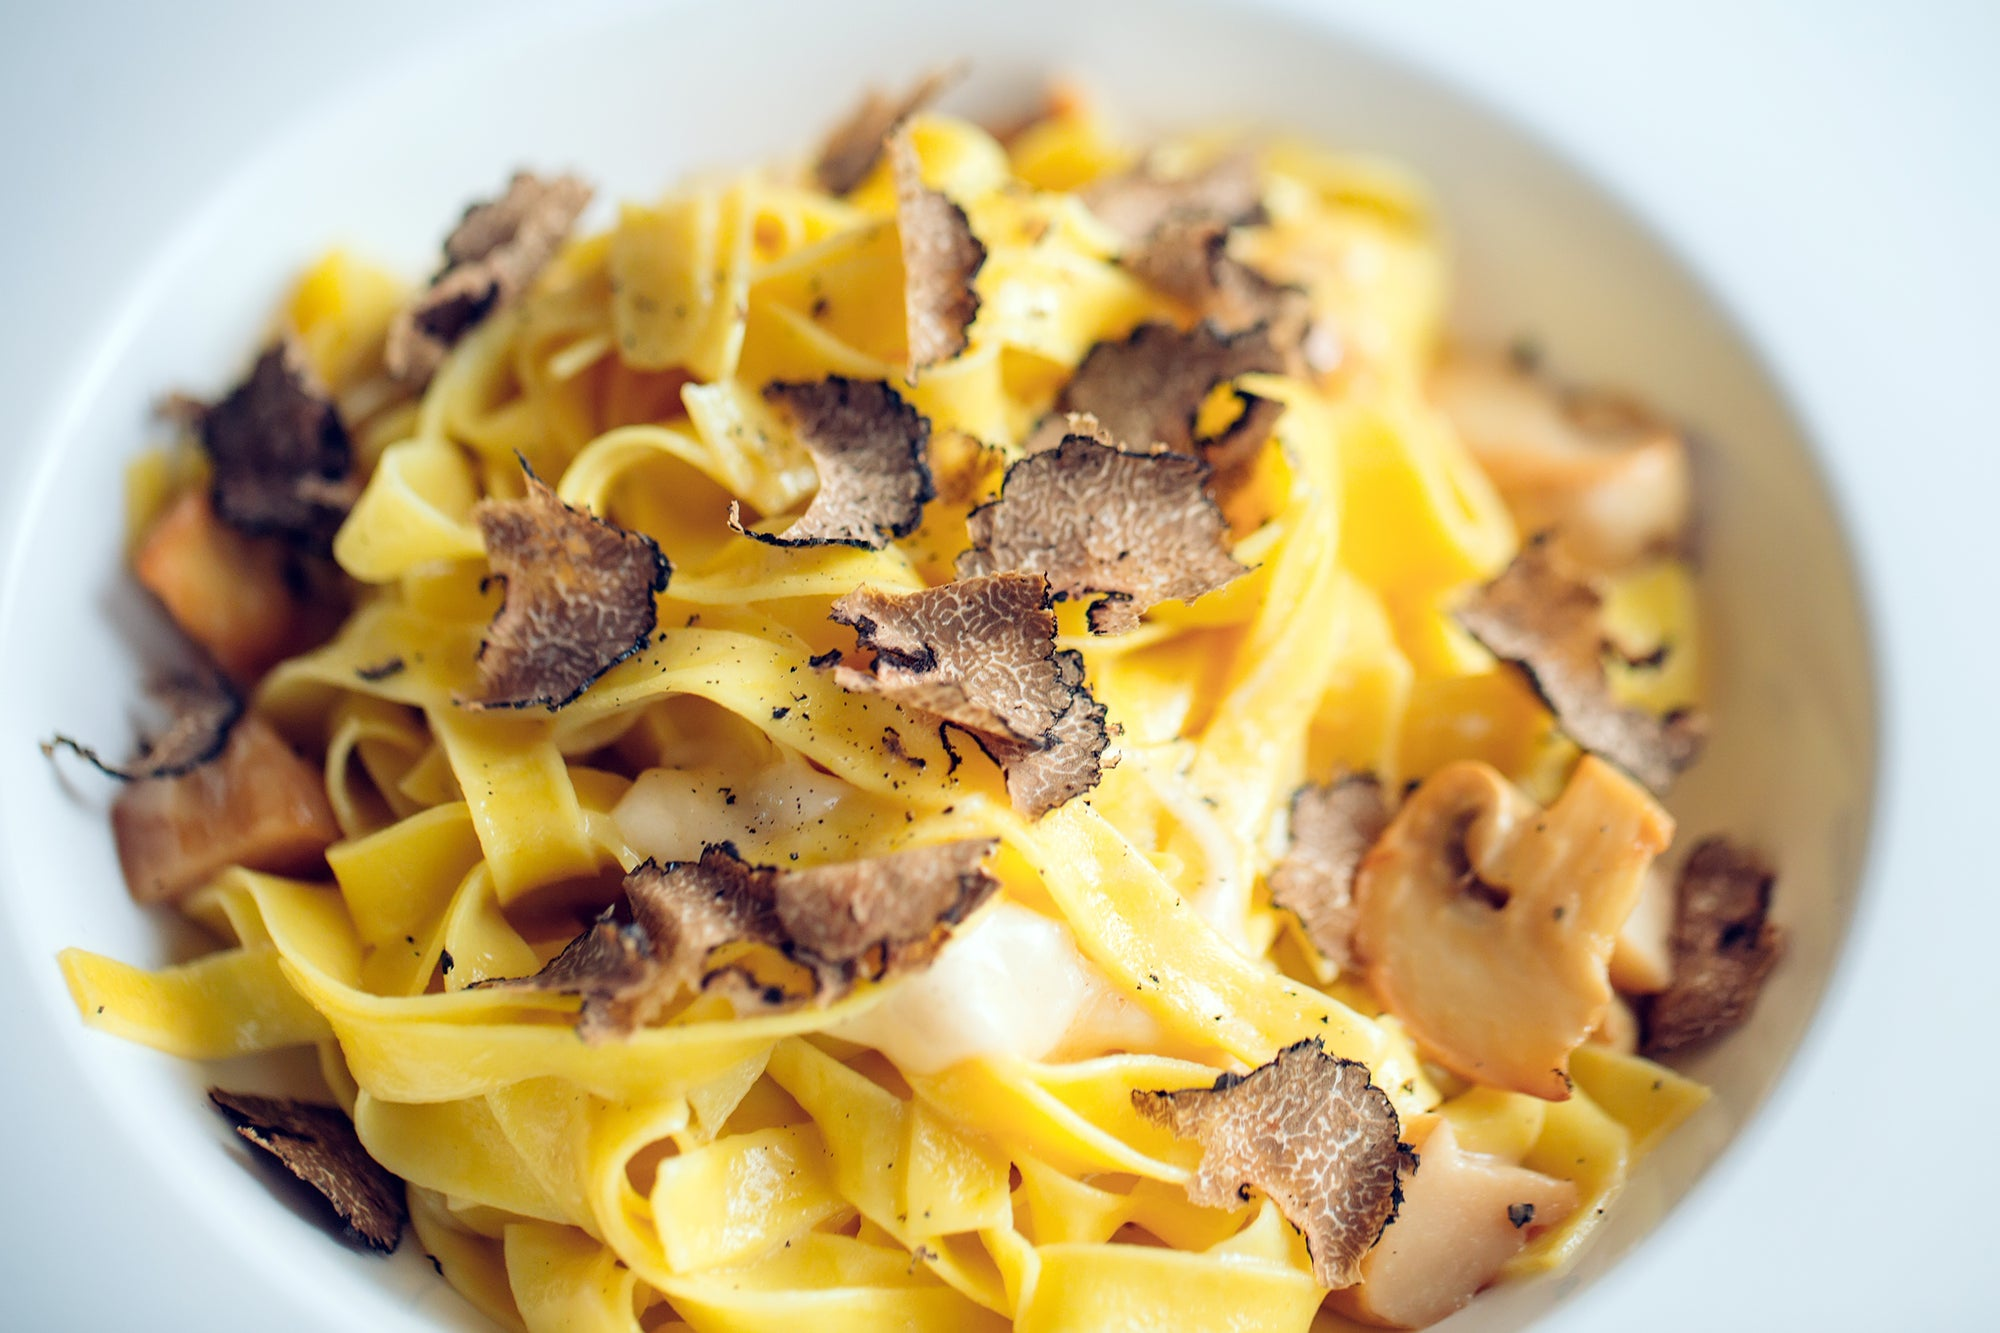 What's the Difference Between Black and White Truffles?